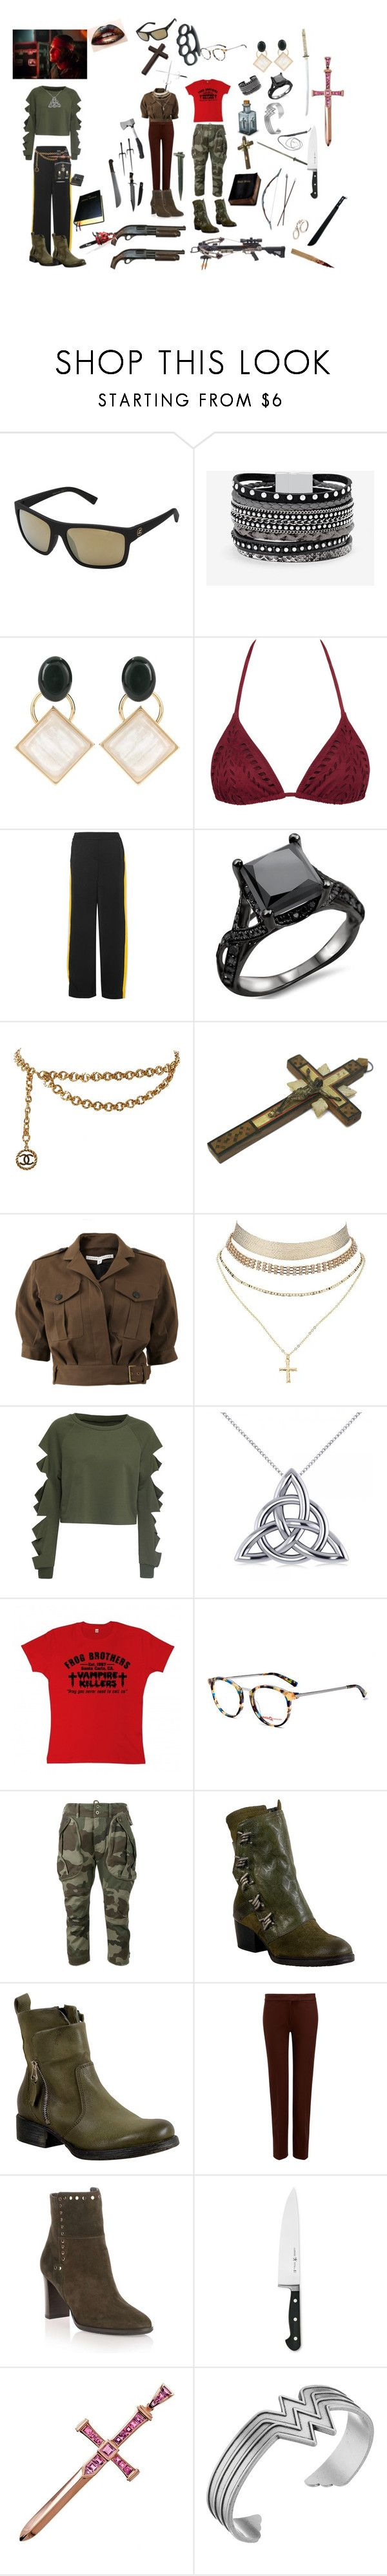 """Froggs sisters 2"" by traceymarh ❤ liked on Polyvore featuring VonZipper, White House Black Market, Marni, E L L E R Y, Chanel, Veronica Beard, Charlotte Russe, WithChic, Allurez and Etnia Barcelona"